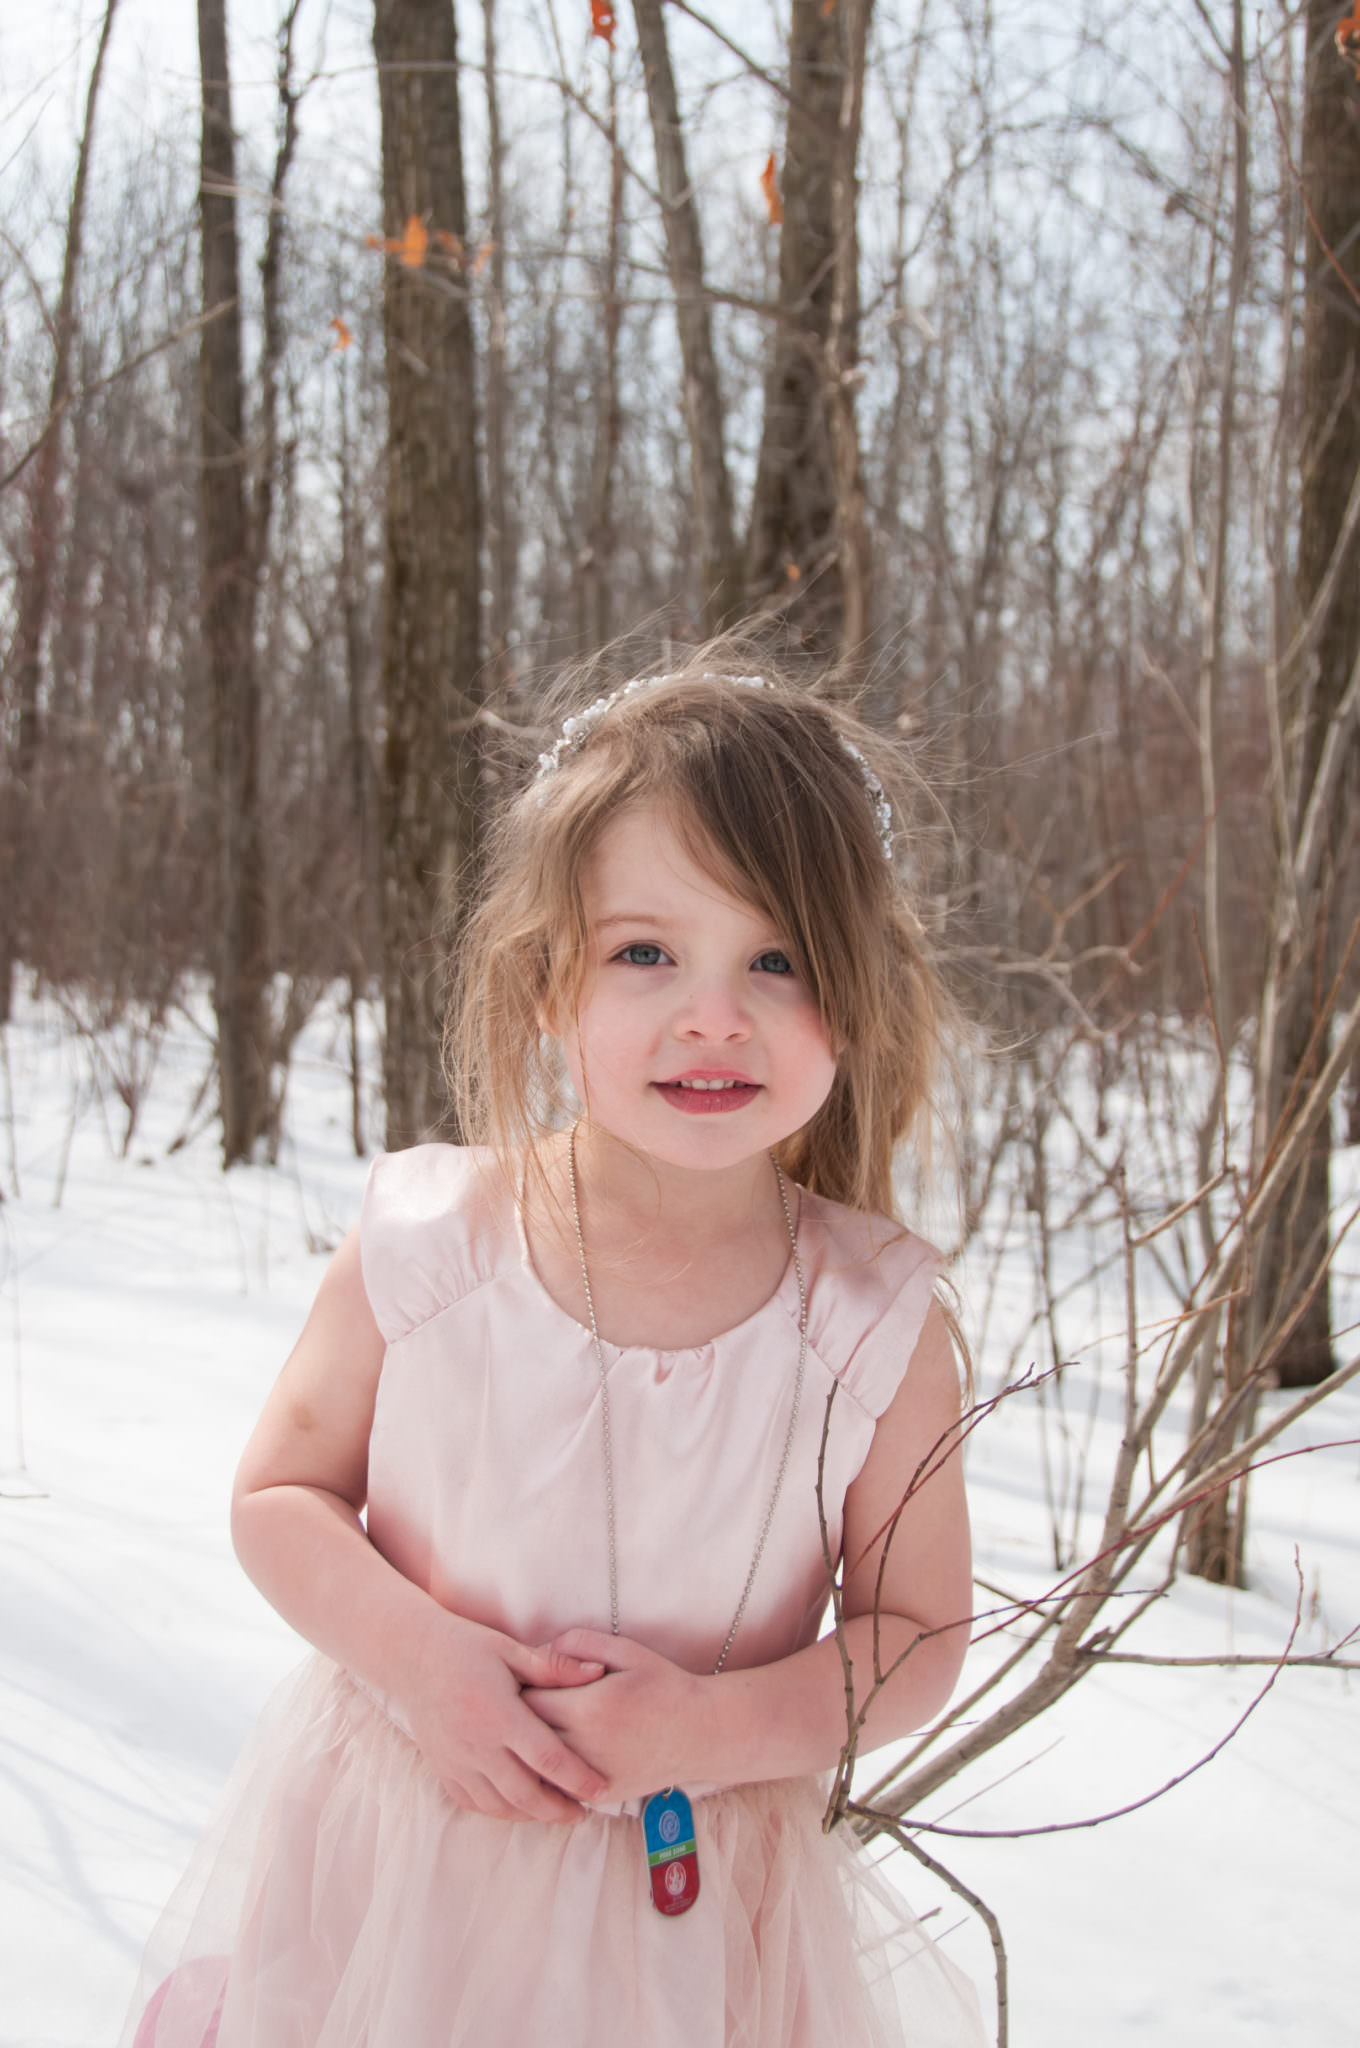 Beautiful young girl in the snow, Northville Child Photography